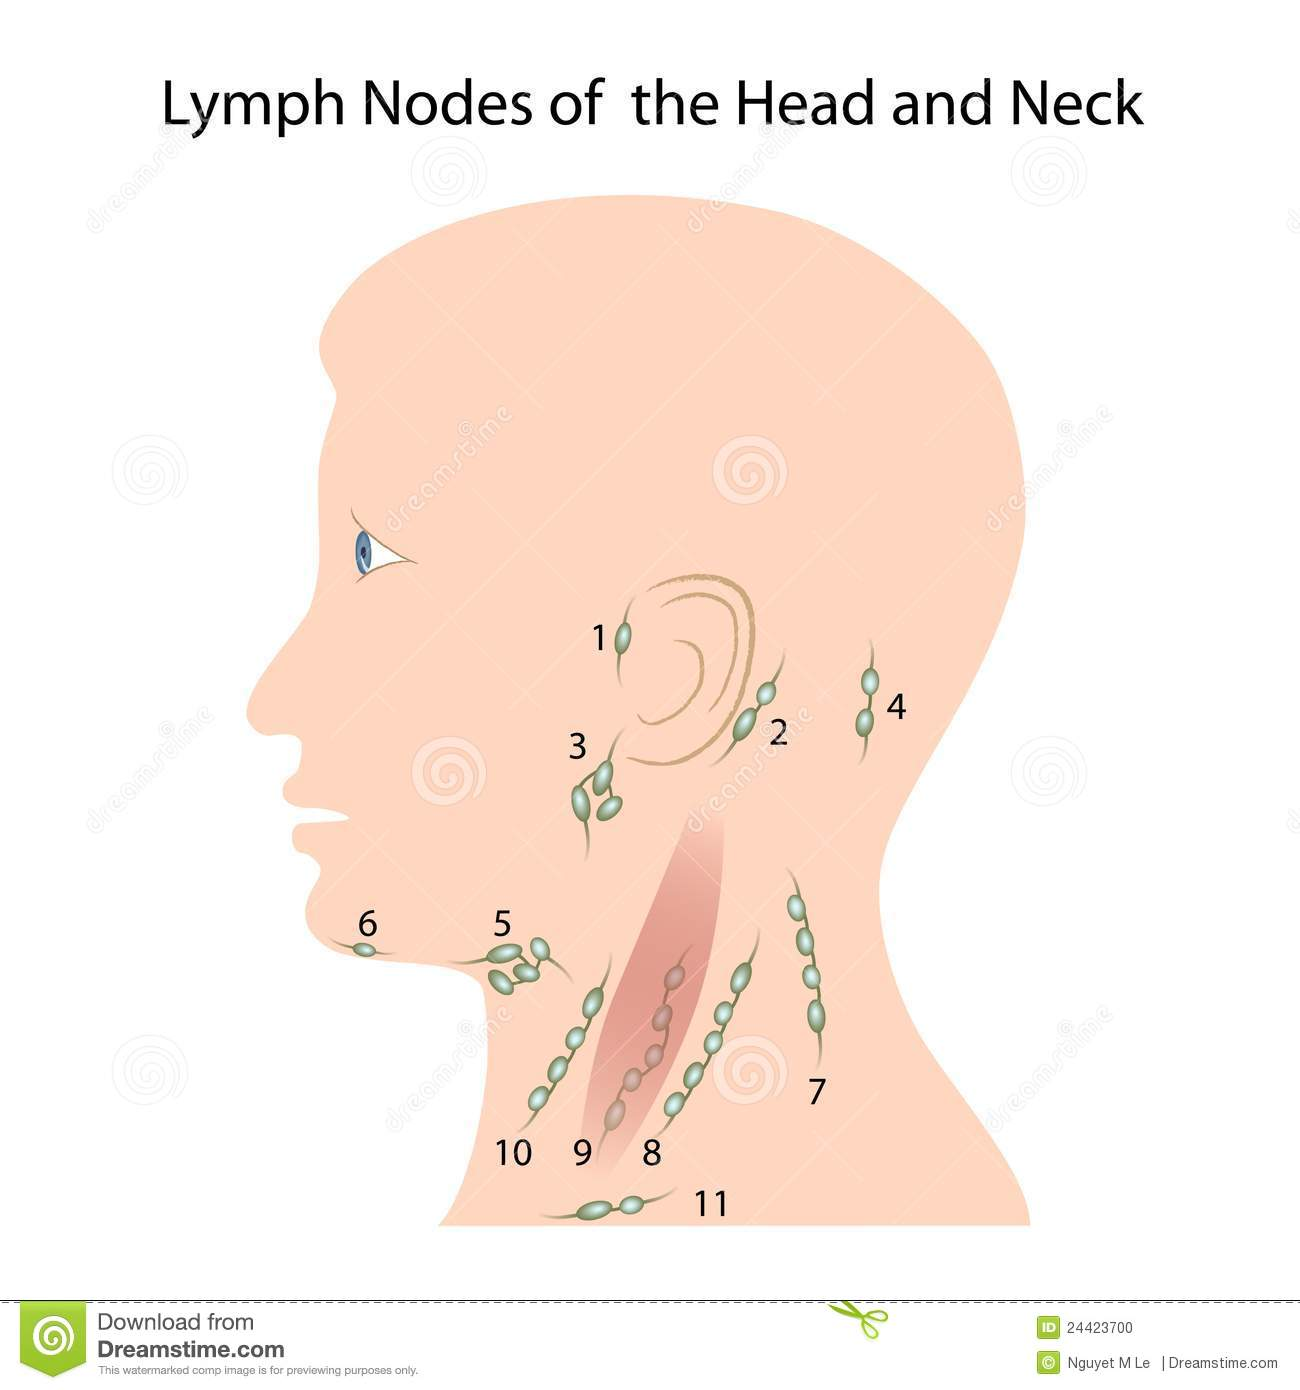 Lymph Nodes Of The Head And Neck Stock Vector - Illustration of ...